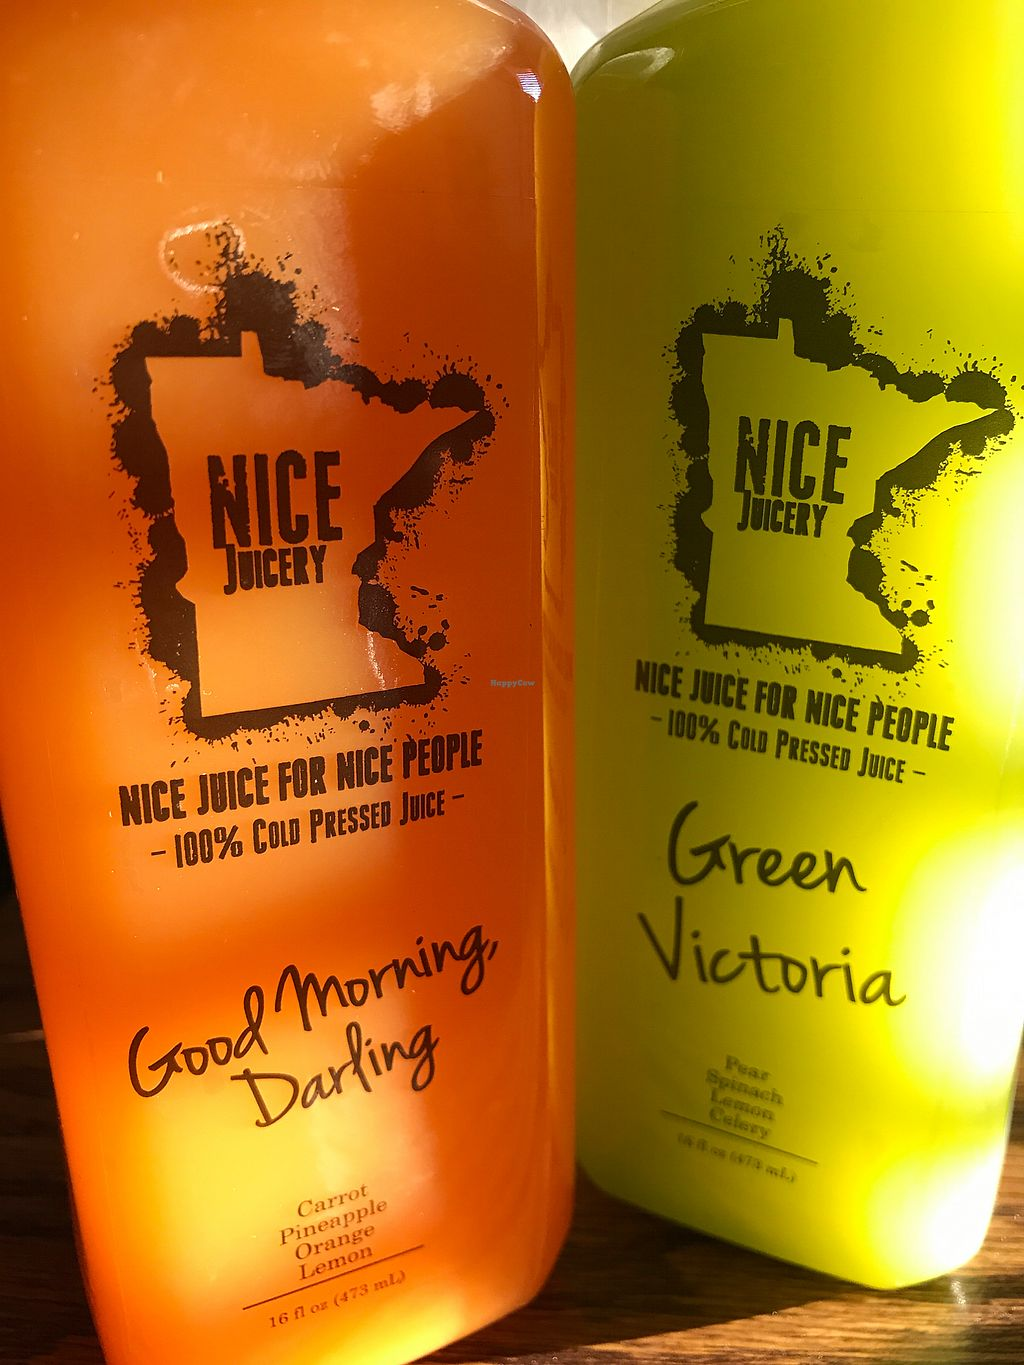 """Photo of Nice Juicery  by <a href=""""/members/profile/KatieB"""">KatieB</a> <br/>Some of their fresh Juices <br/> September 29, 2017  - <a href='/contact/abuse/image/101972/309945'>Report</a>"""